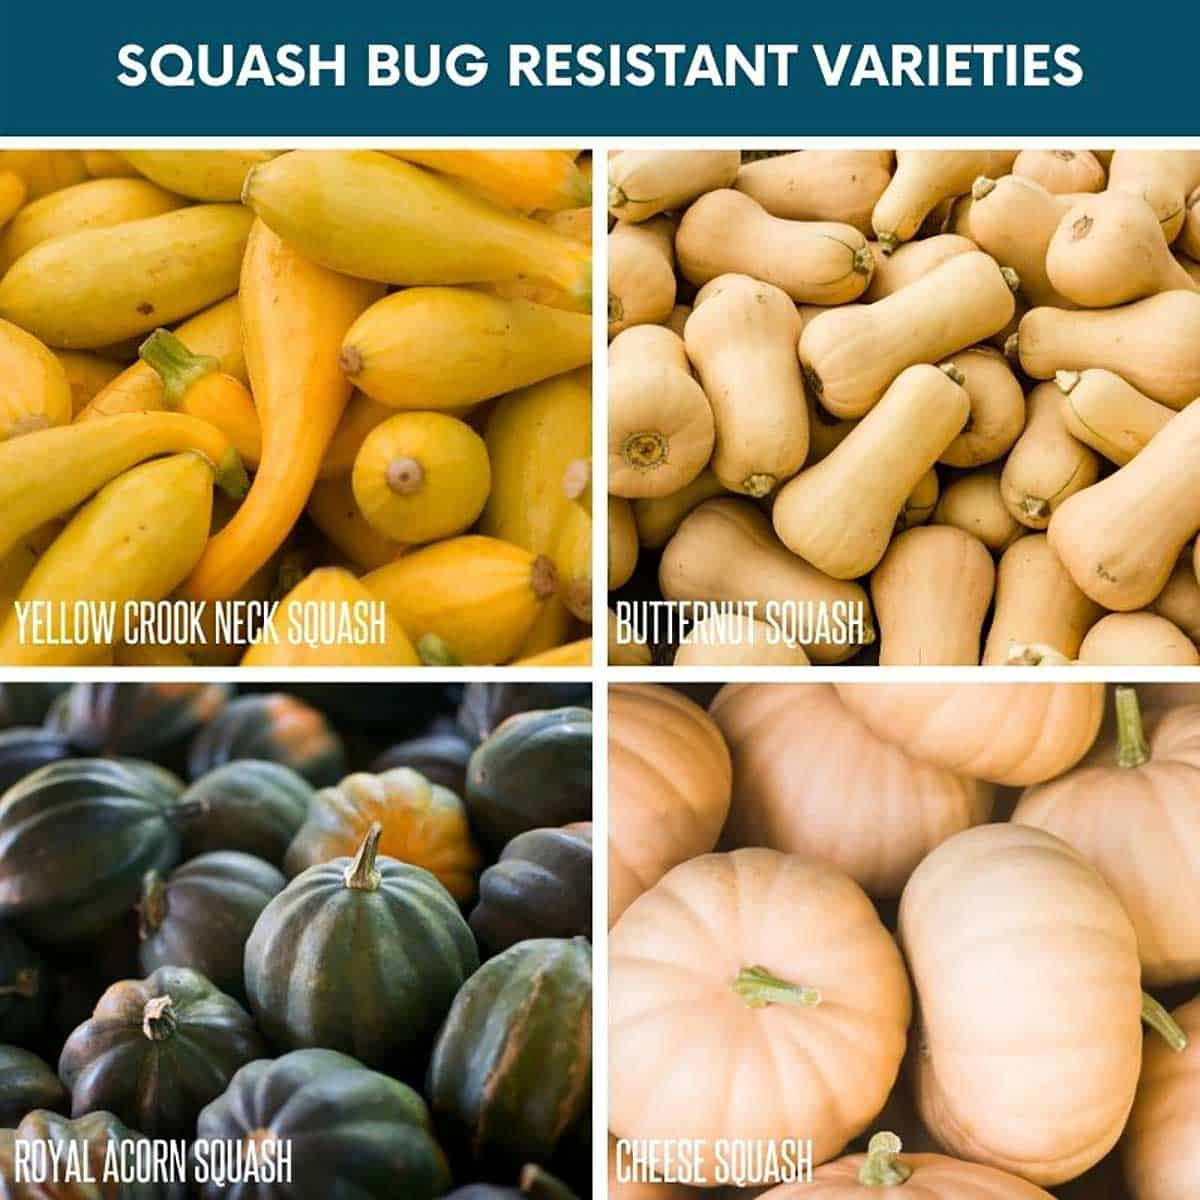 A divided image of squash bug resistant varieties: yellow crookneck squash, butternut squash, royal acorn squash, and cheese squash.